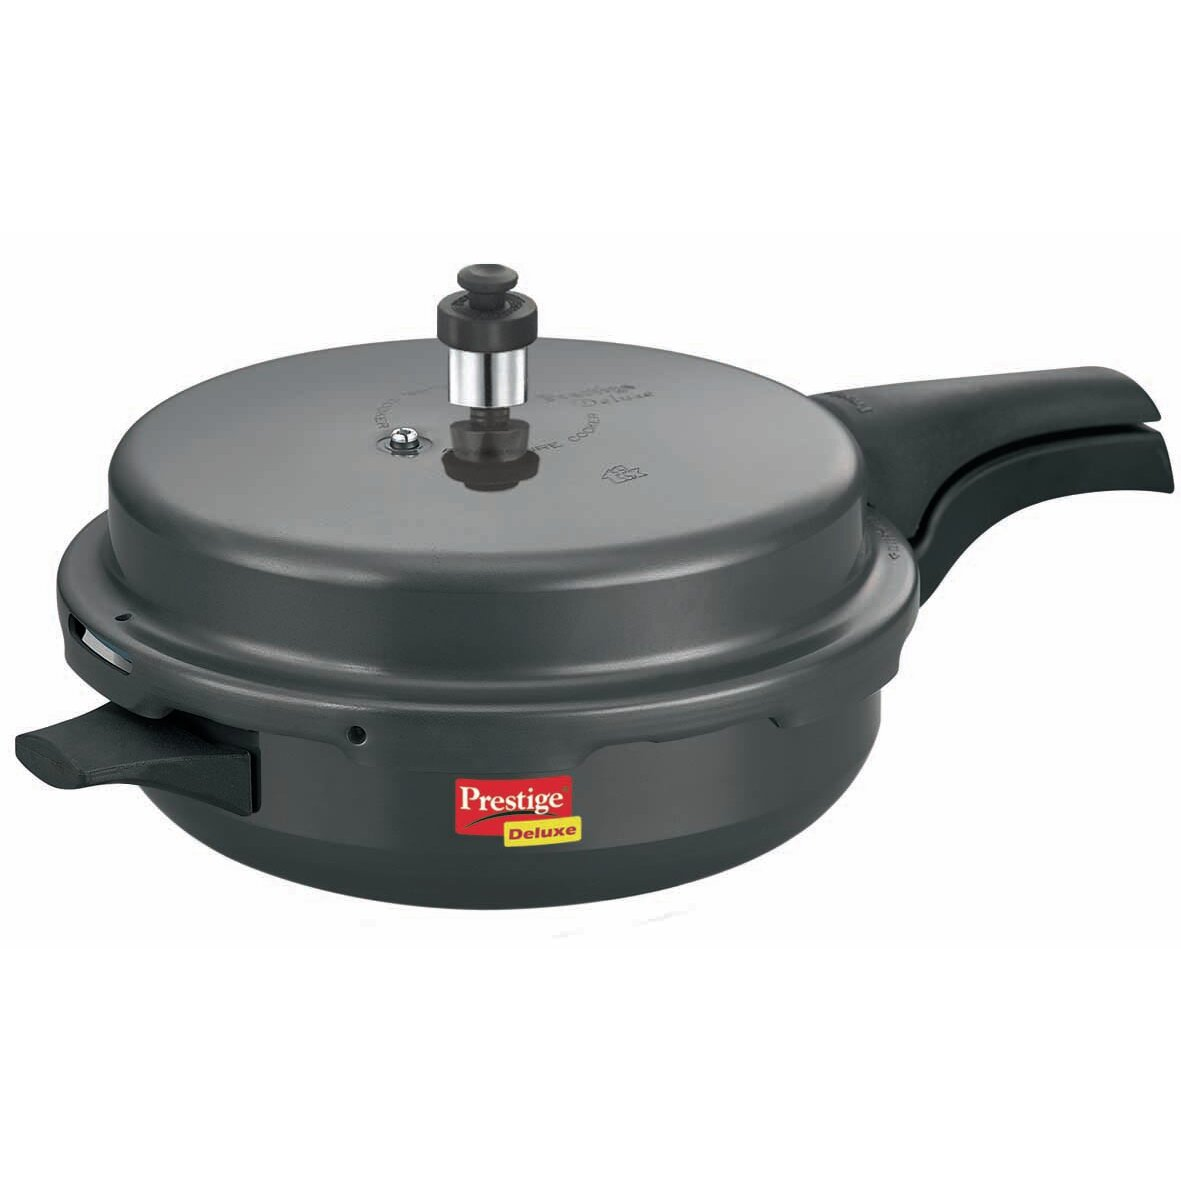 Prestige Cookers Hard Anodised Pan Pressure Cooker & Reviews | Wayfair